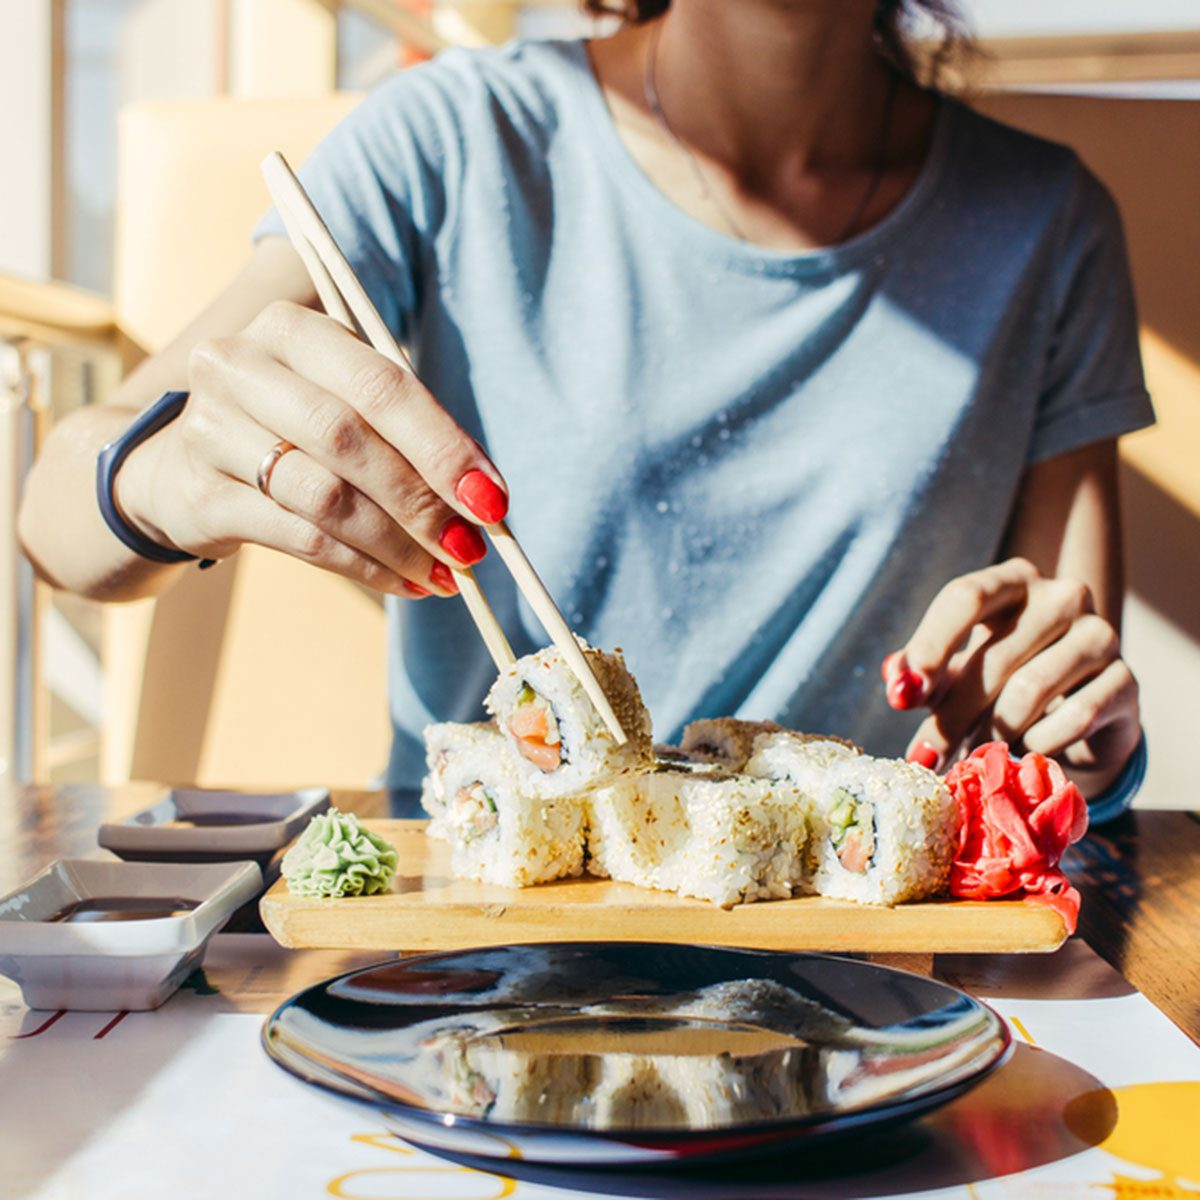 Woman in the blue shirt is eating at a sushi restaurant in summer